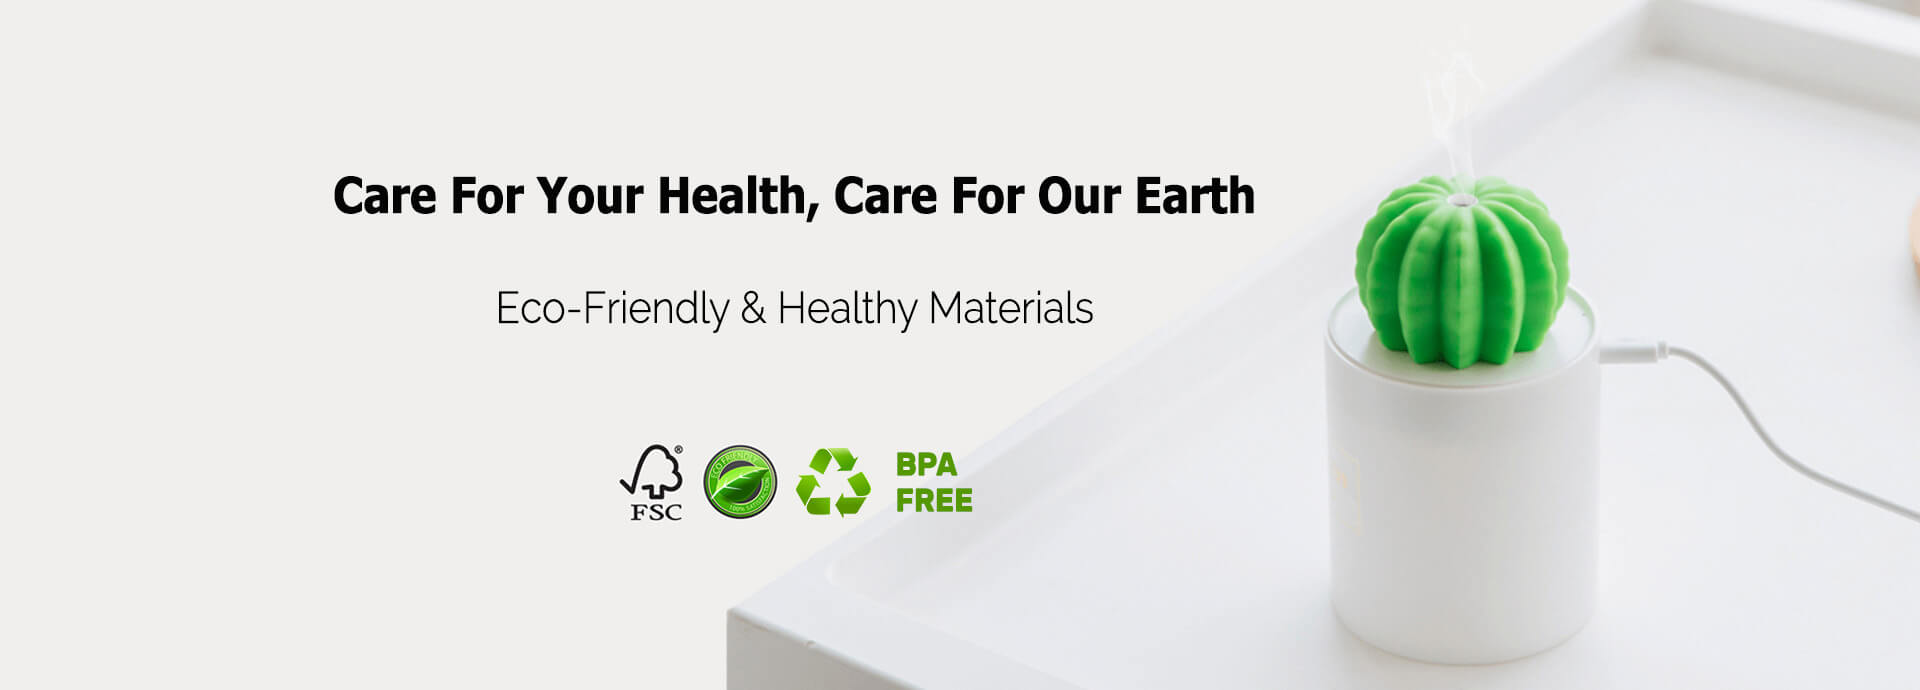 Care For Your Health, Care For Our Earth